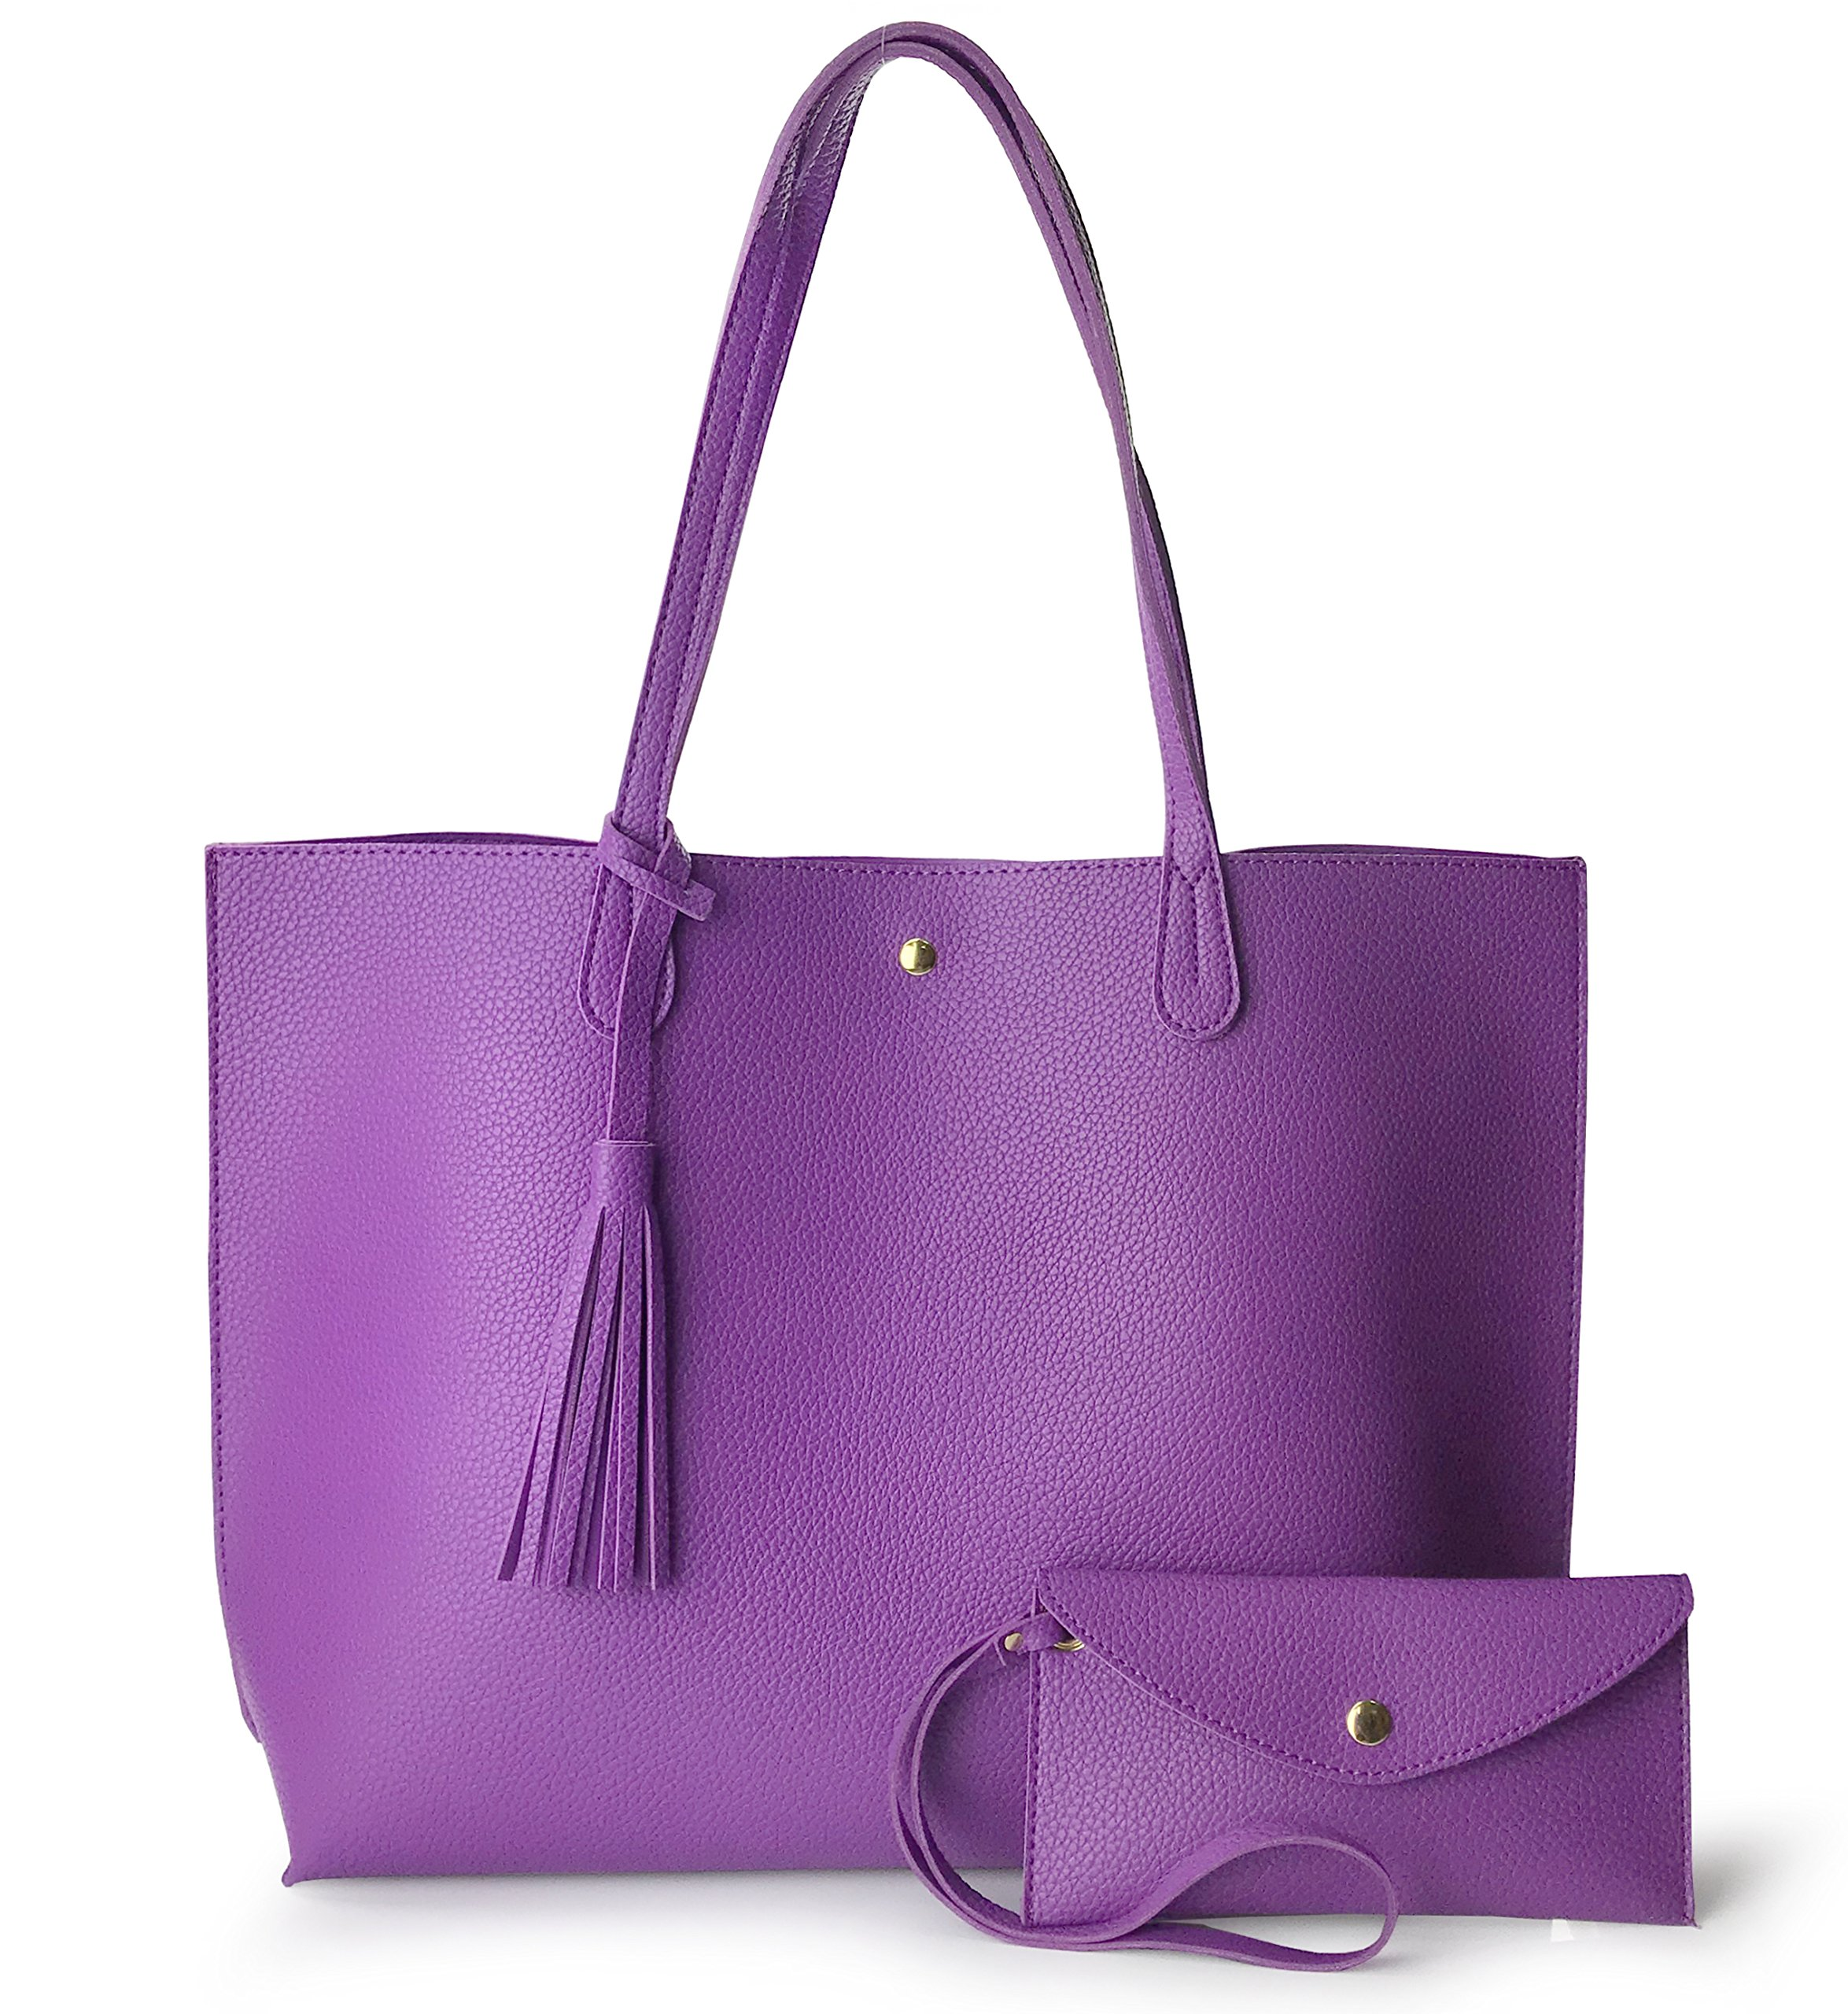 Minimalist Clean Cut Pebbled Faux Leather Tote Womens Shoulder Handbag (Violet)